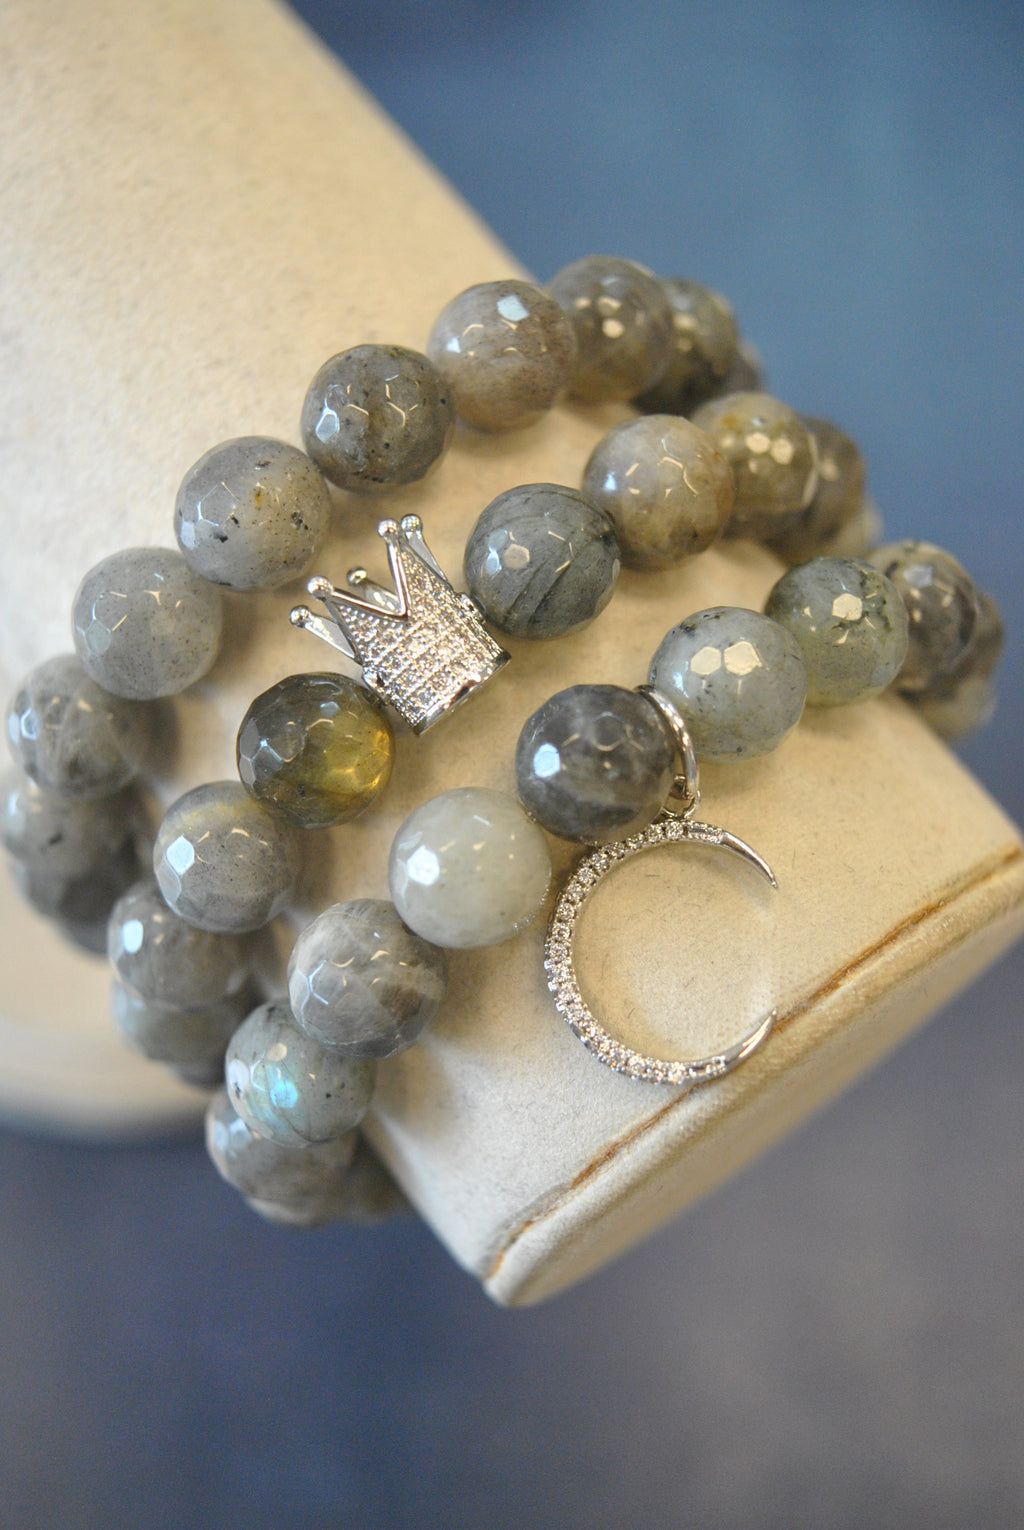 PRINCESS ON THE MOON - NATURAL LABRADORITE STRETCHY BRACELETS SET